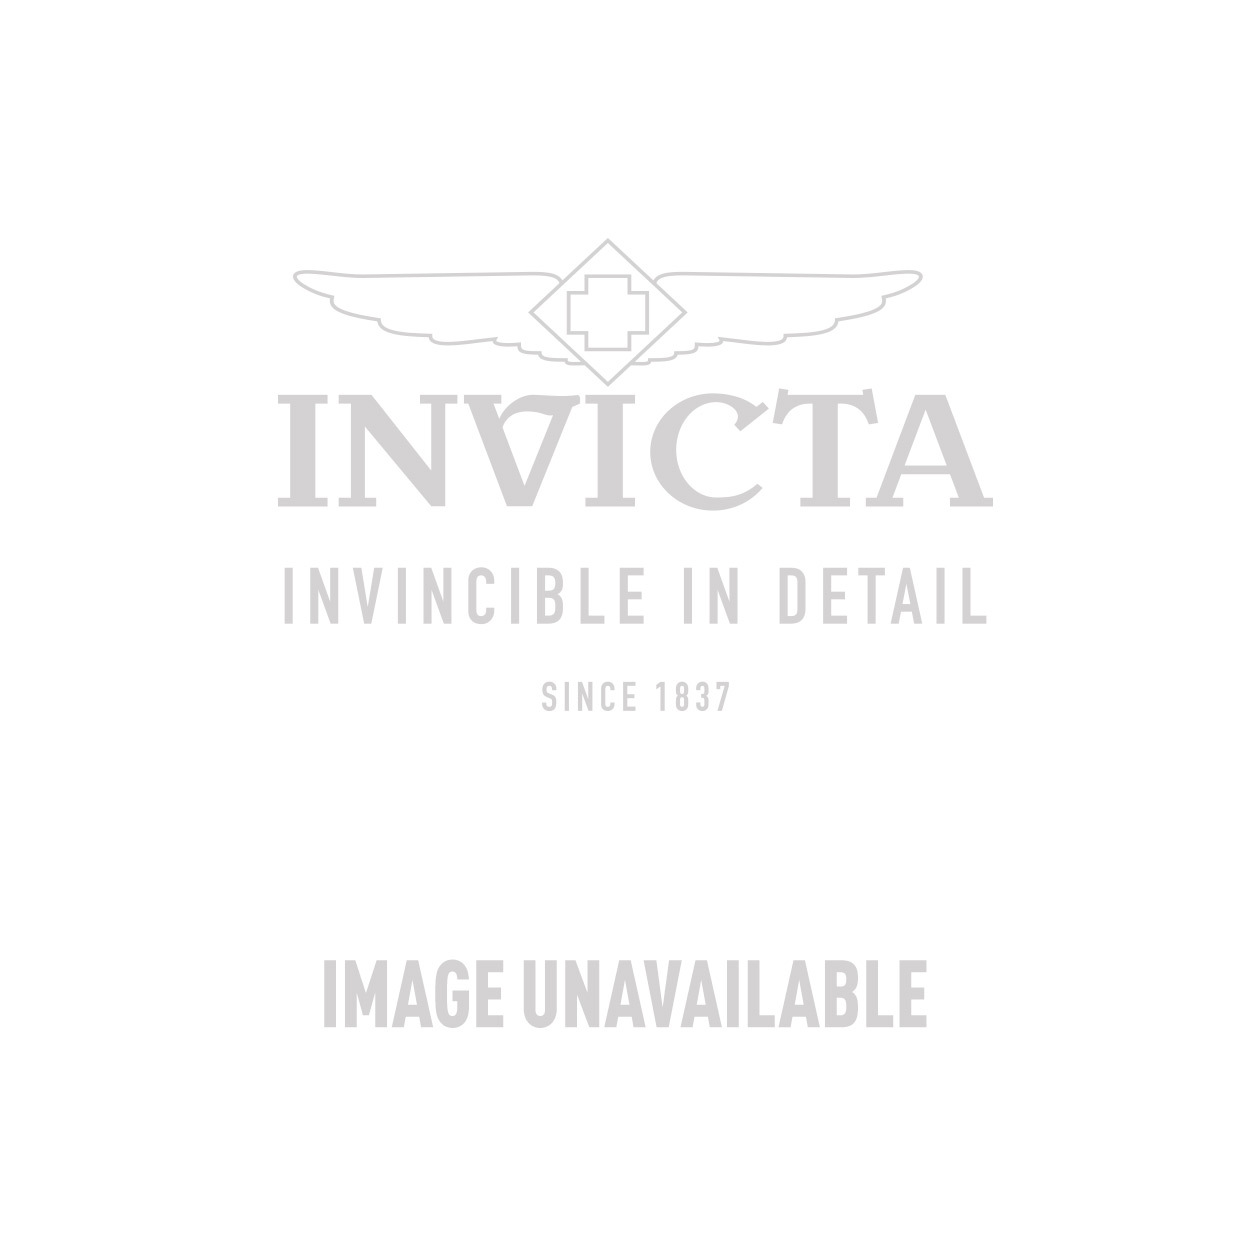 Invicta Bolt Swiss Made Quartz Watch - Gold, Black case with Gold, Black tone Stainless Steel band - Model 12753